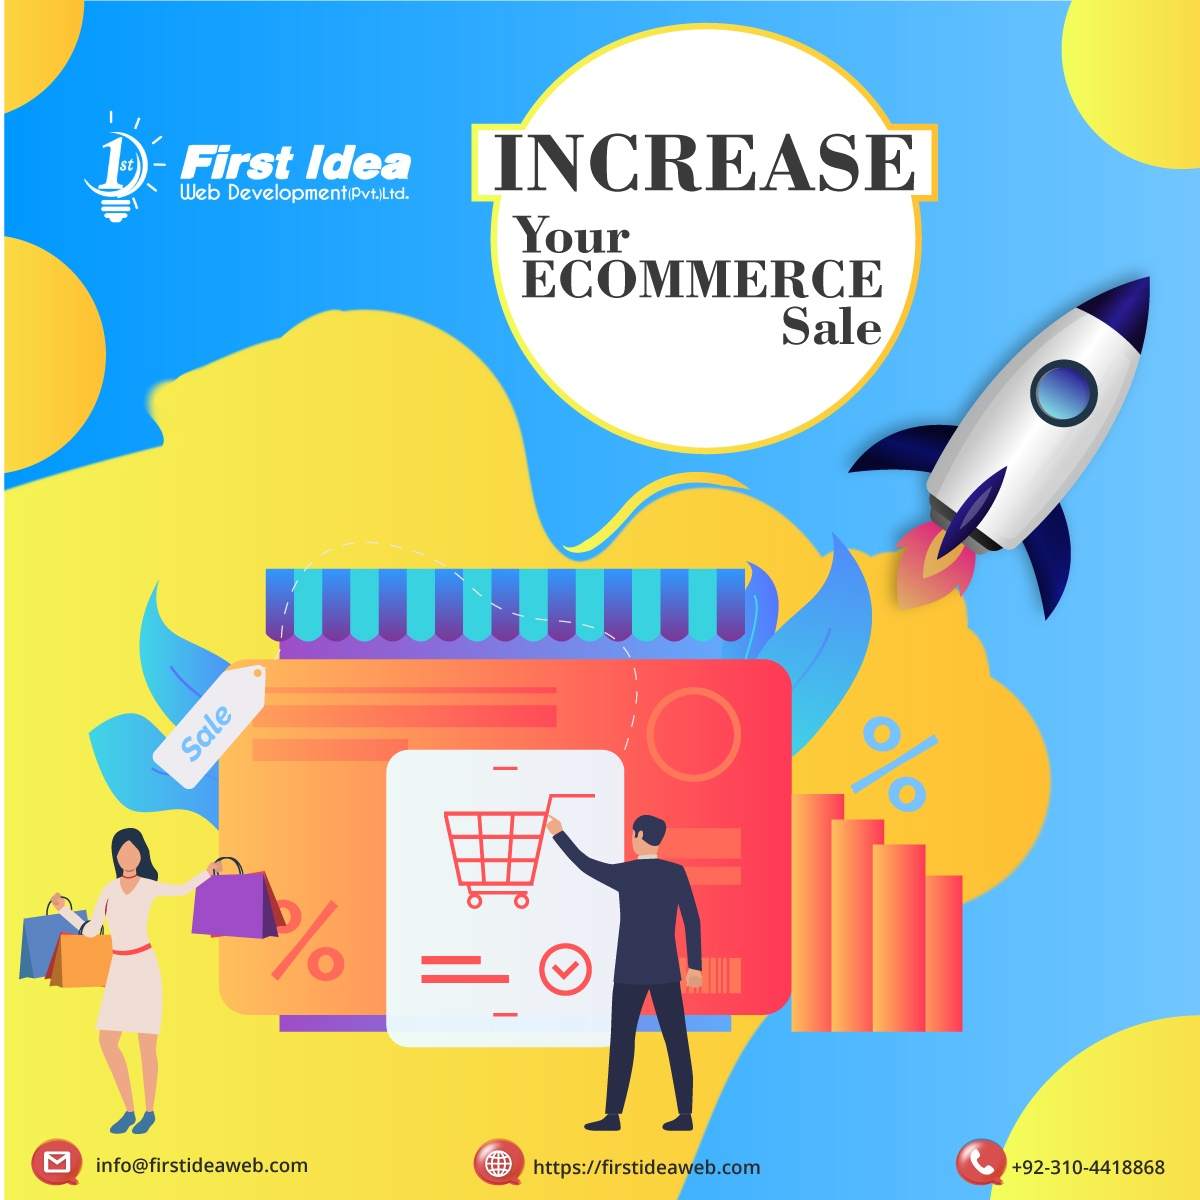 eCommerce increase sales, boost eCommerce sales, increase sales on eCommerce website, how to increase sales on eCommerce